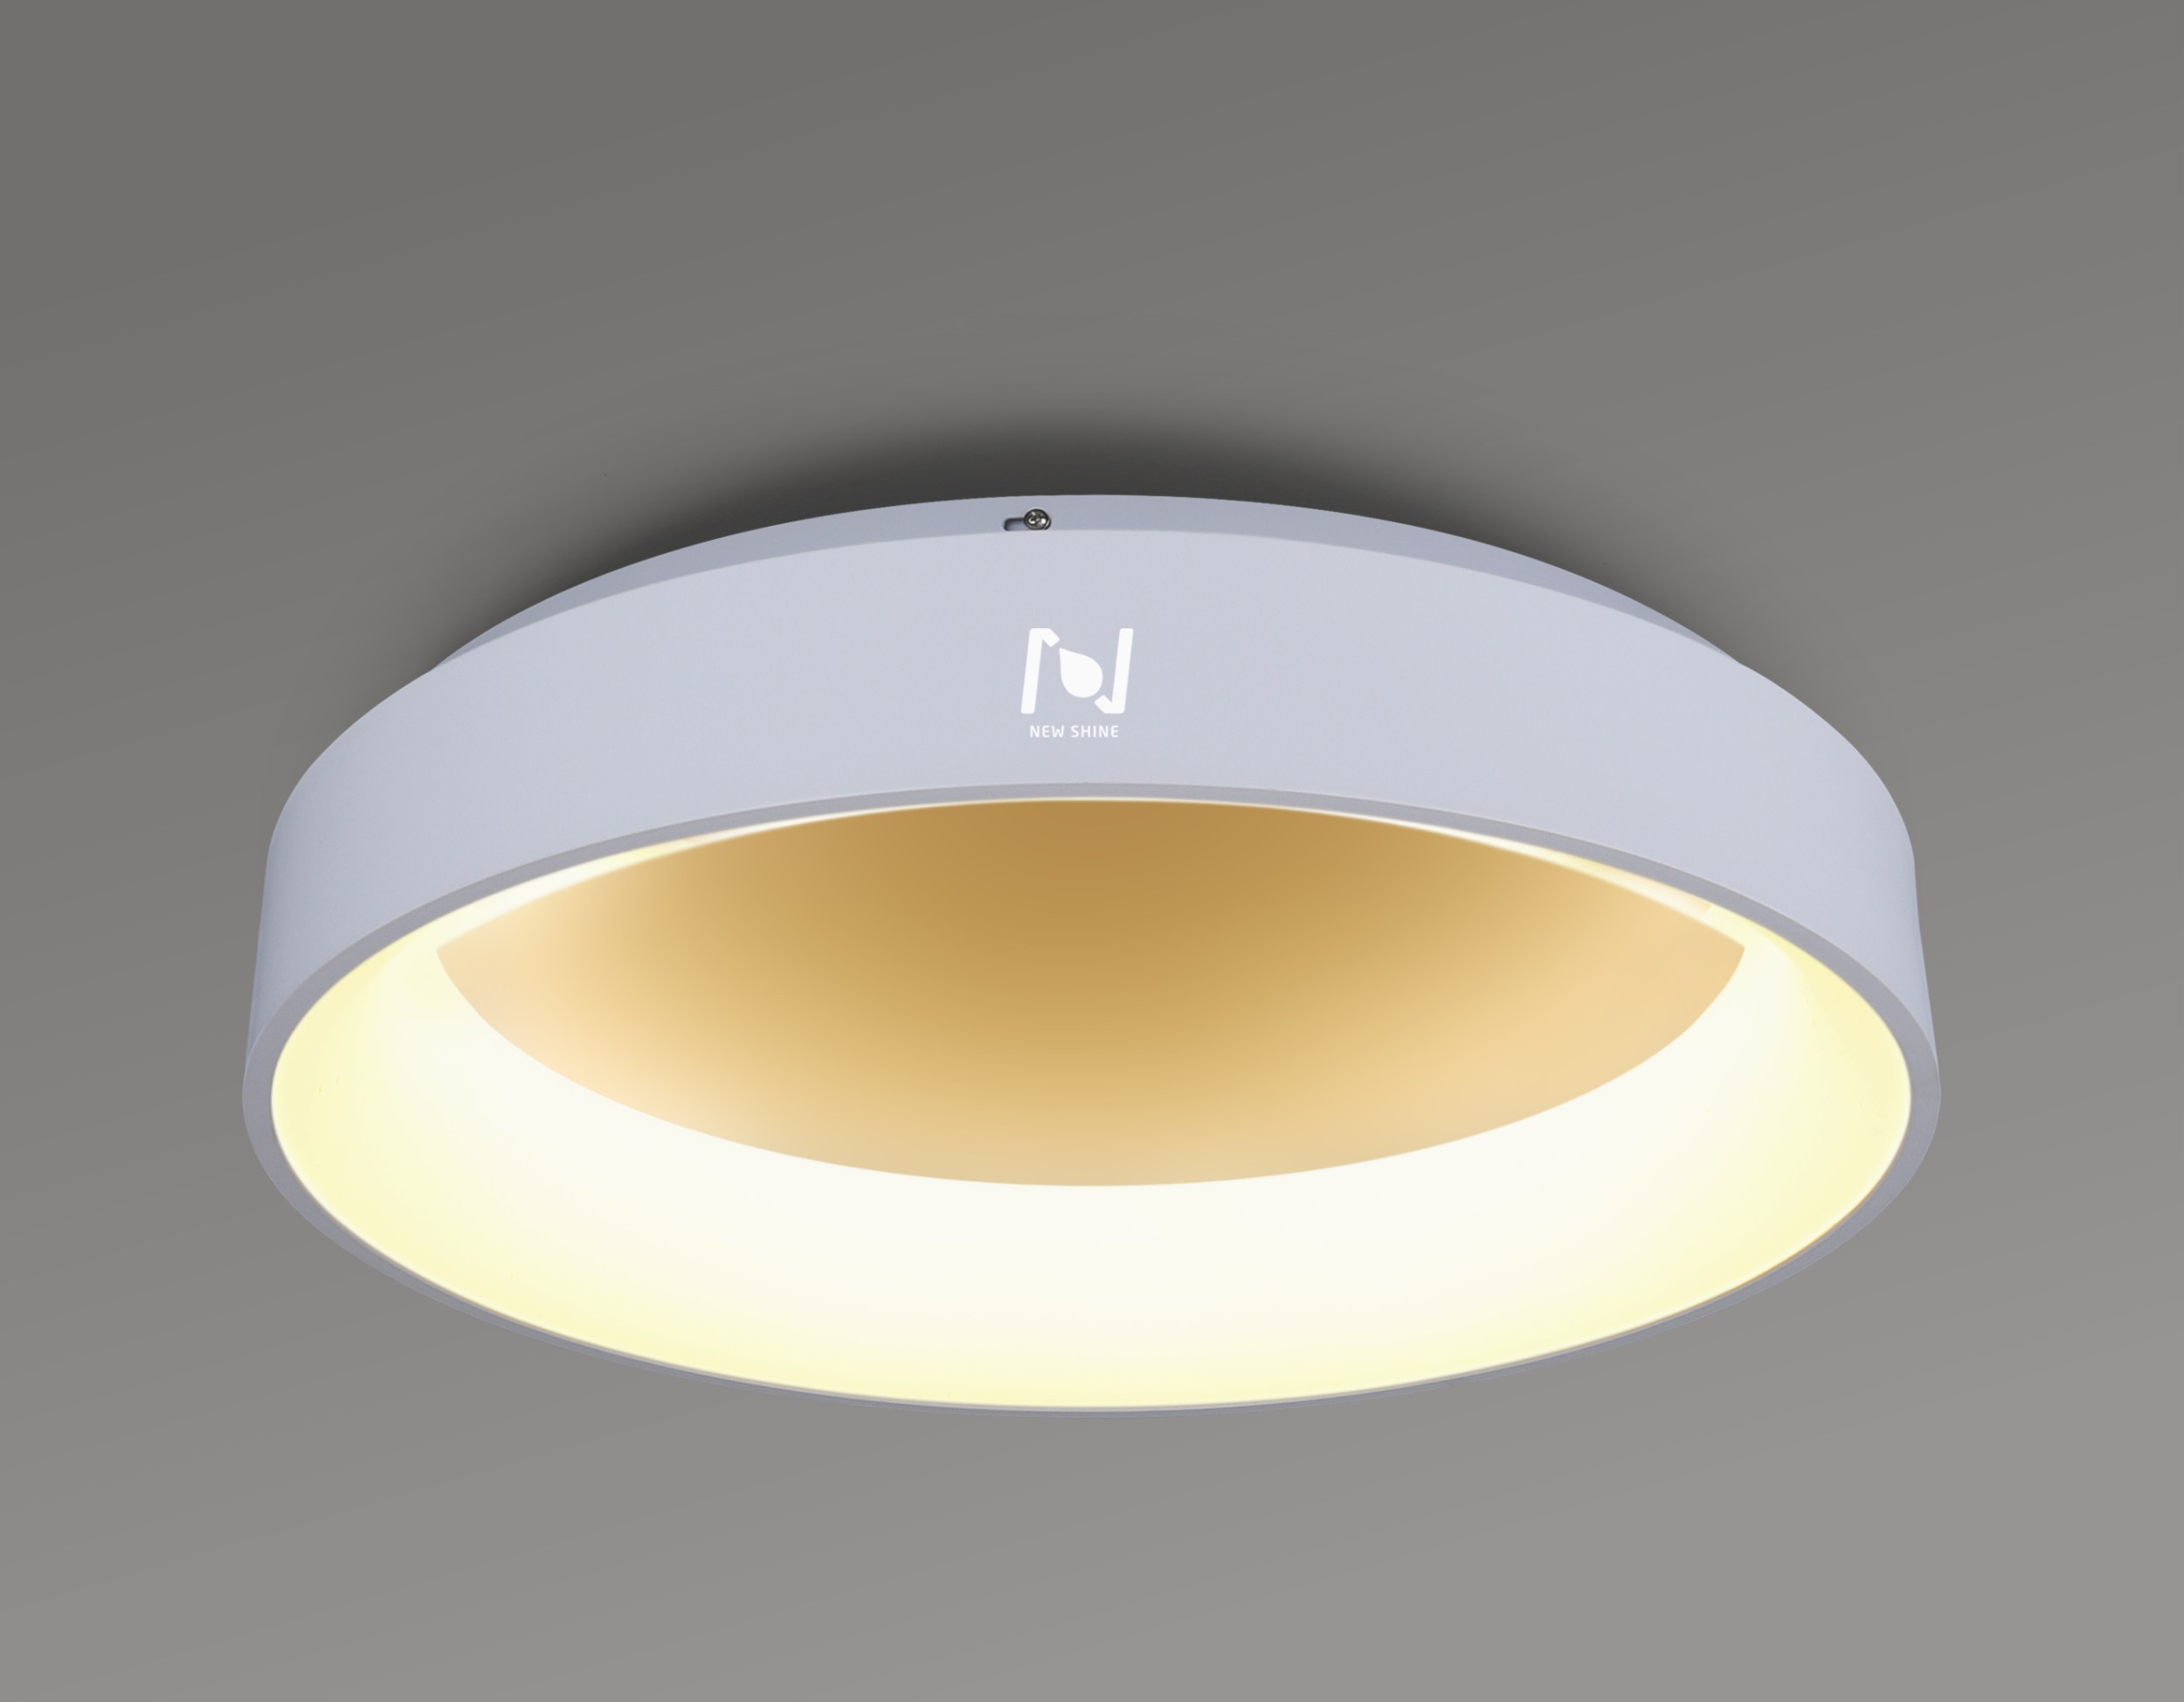 PROMOTION PRICE ROUND LED DECORATIVE LIGHTING LL0201M-15W